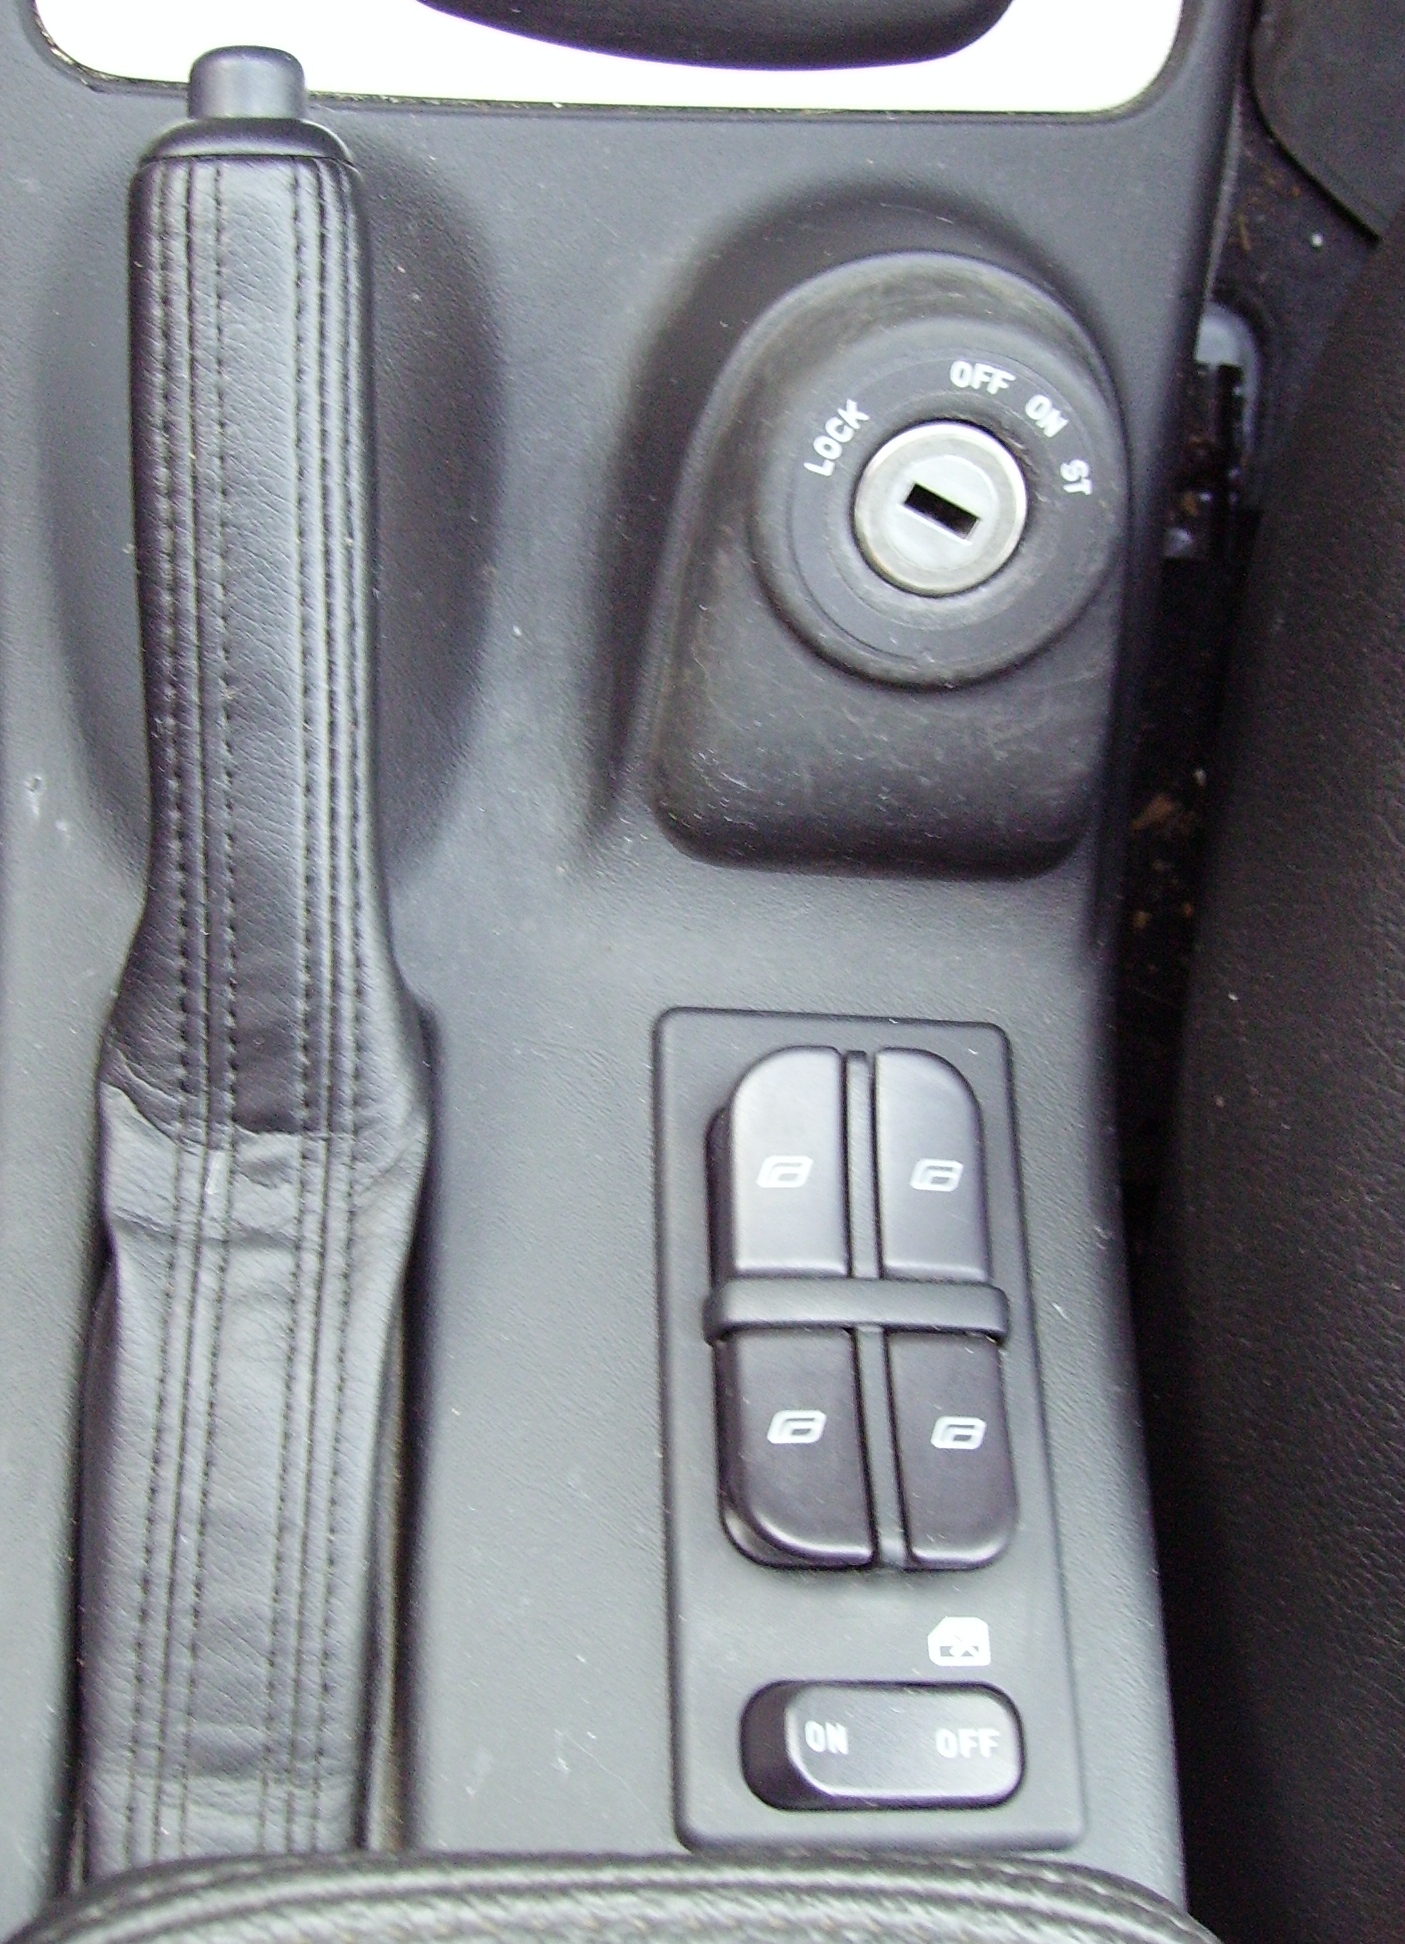 Switch Seats In Car Player Unknowns